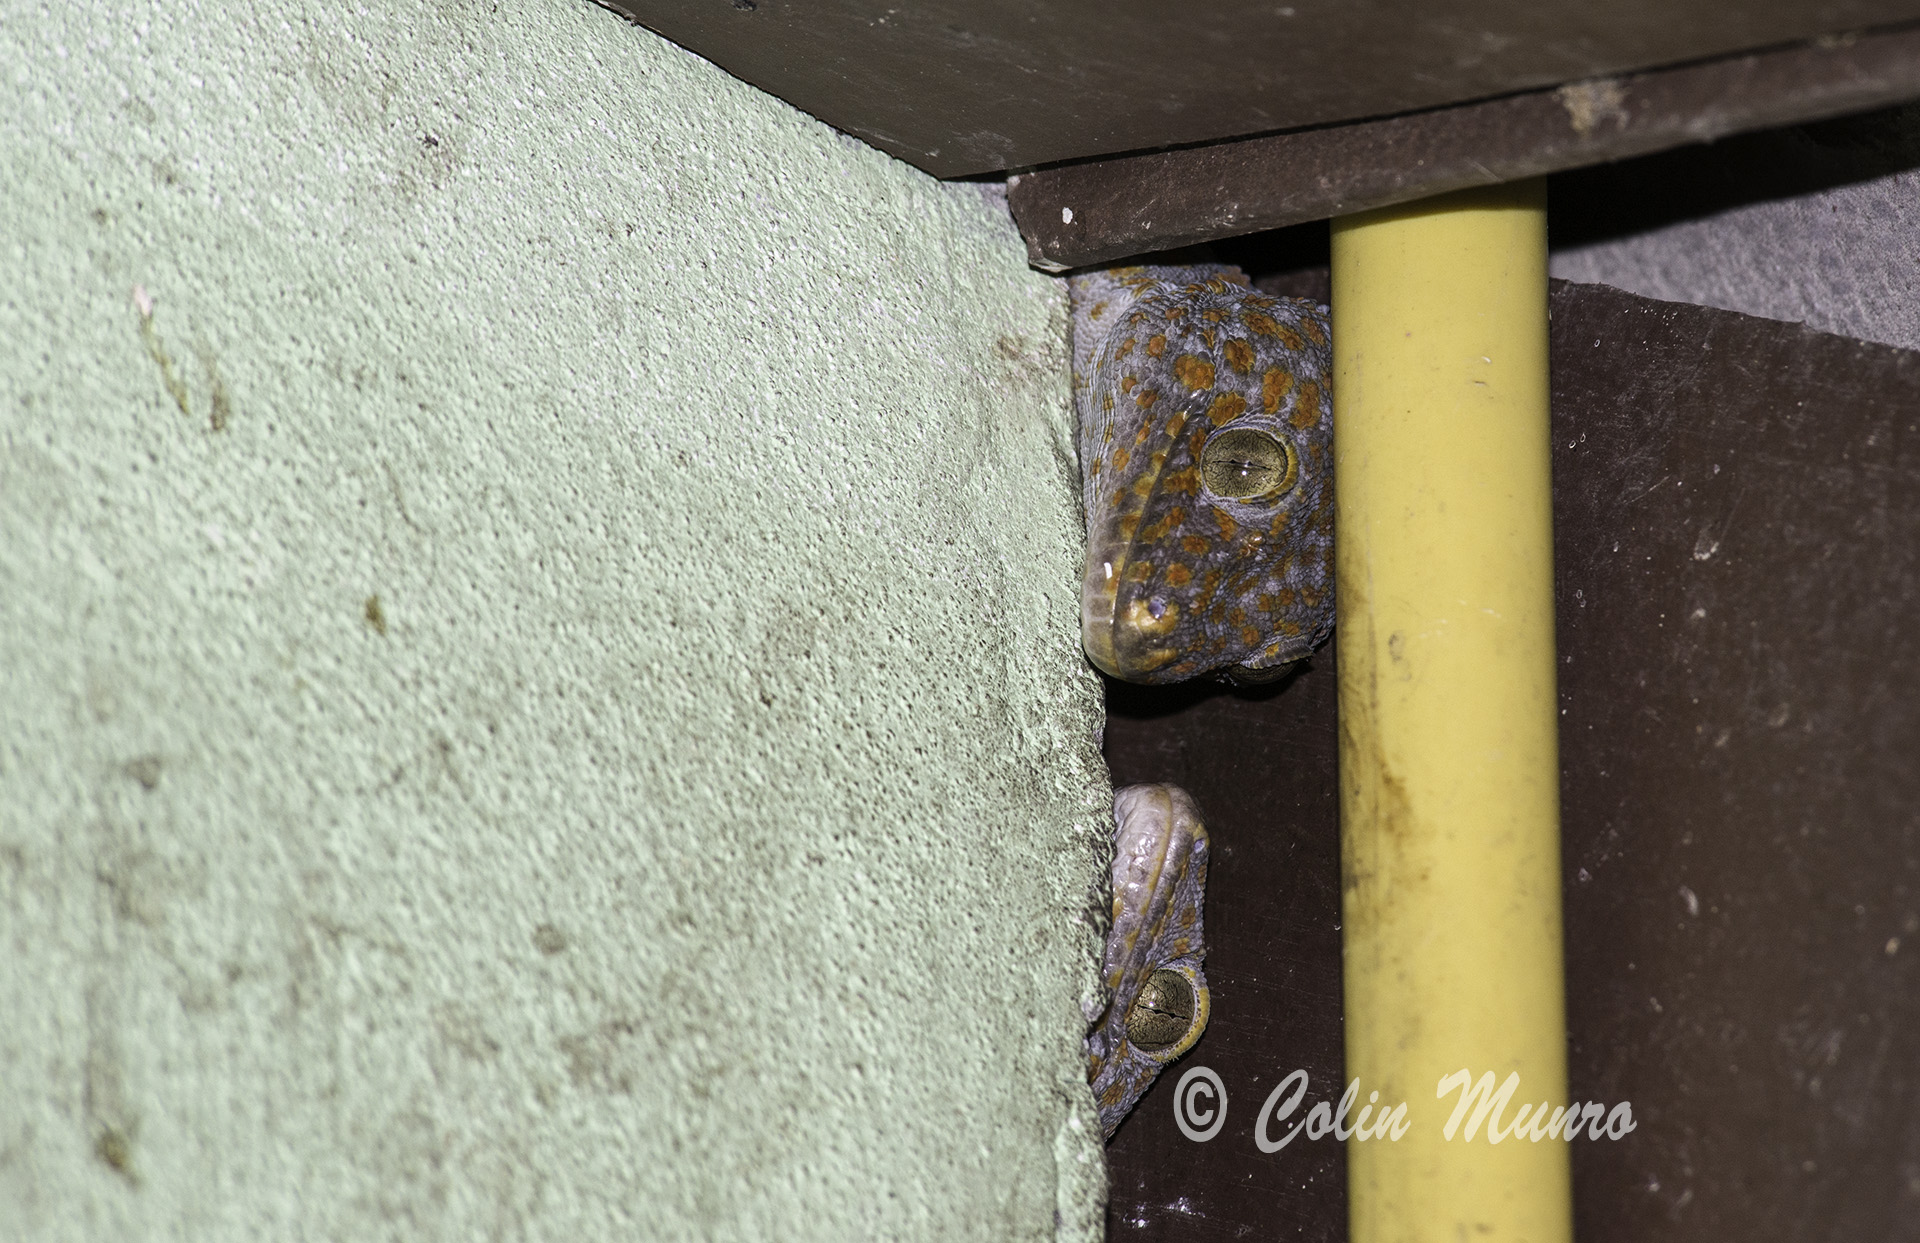 My gecko house-mates: noisy tokays, third eyes and superpowers